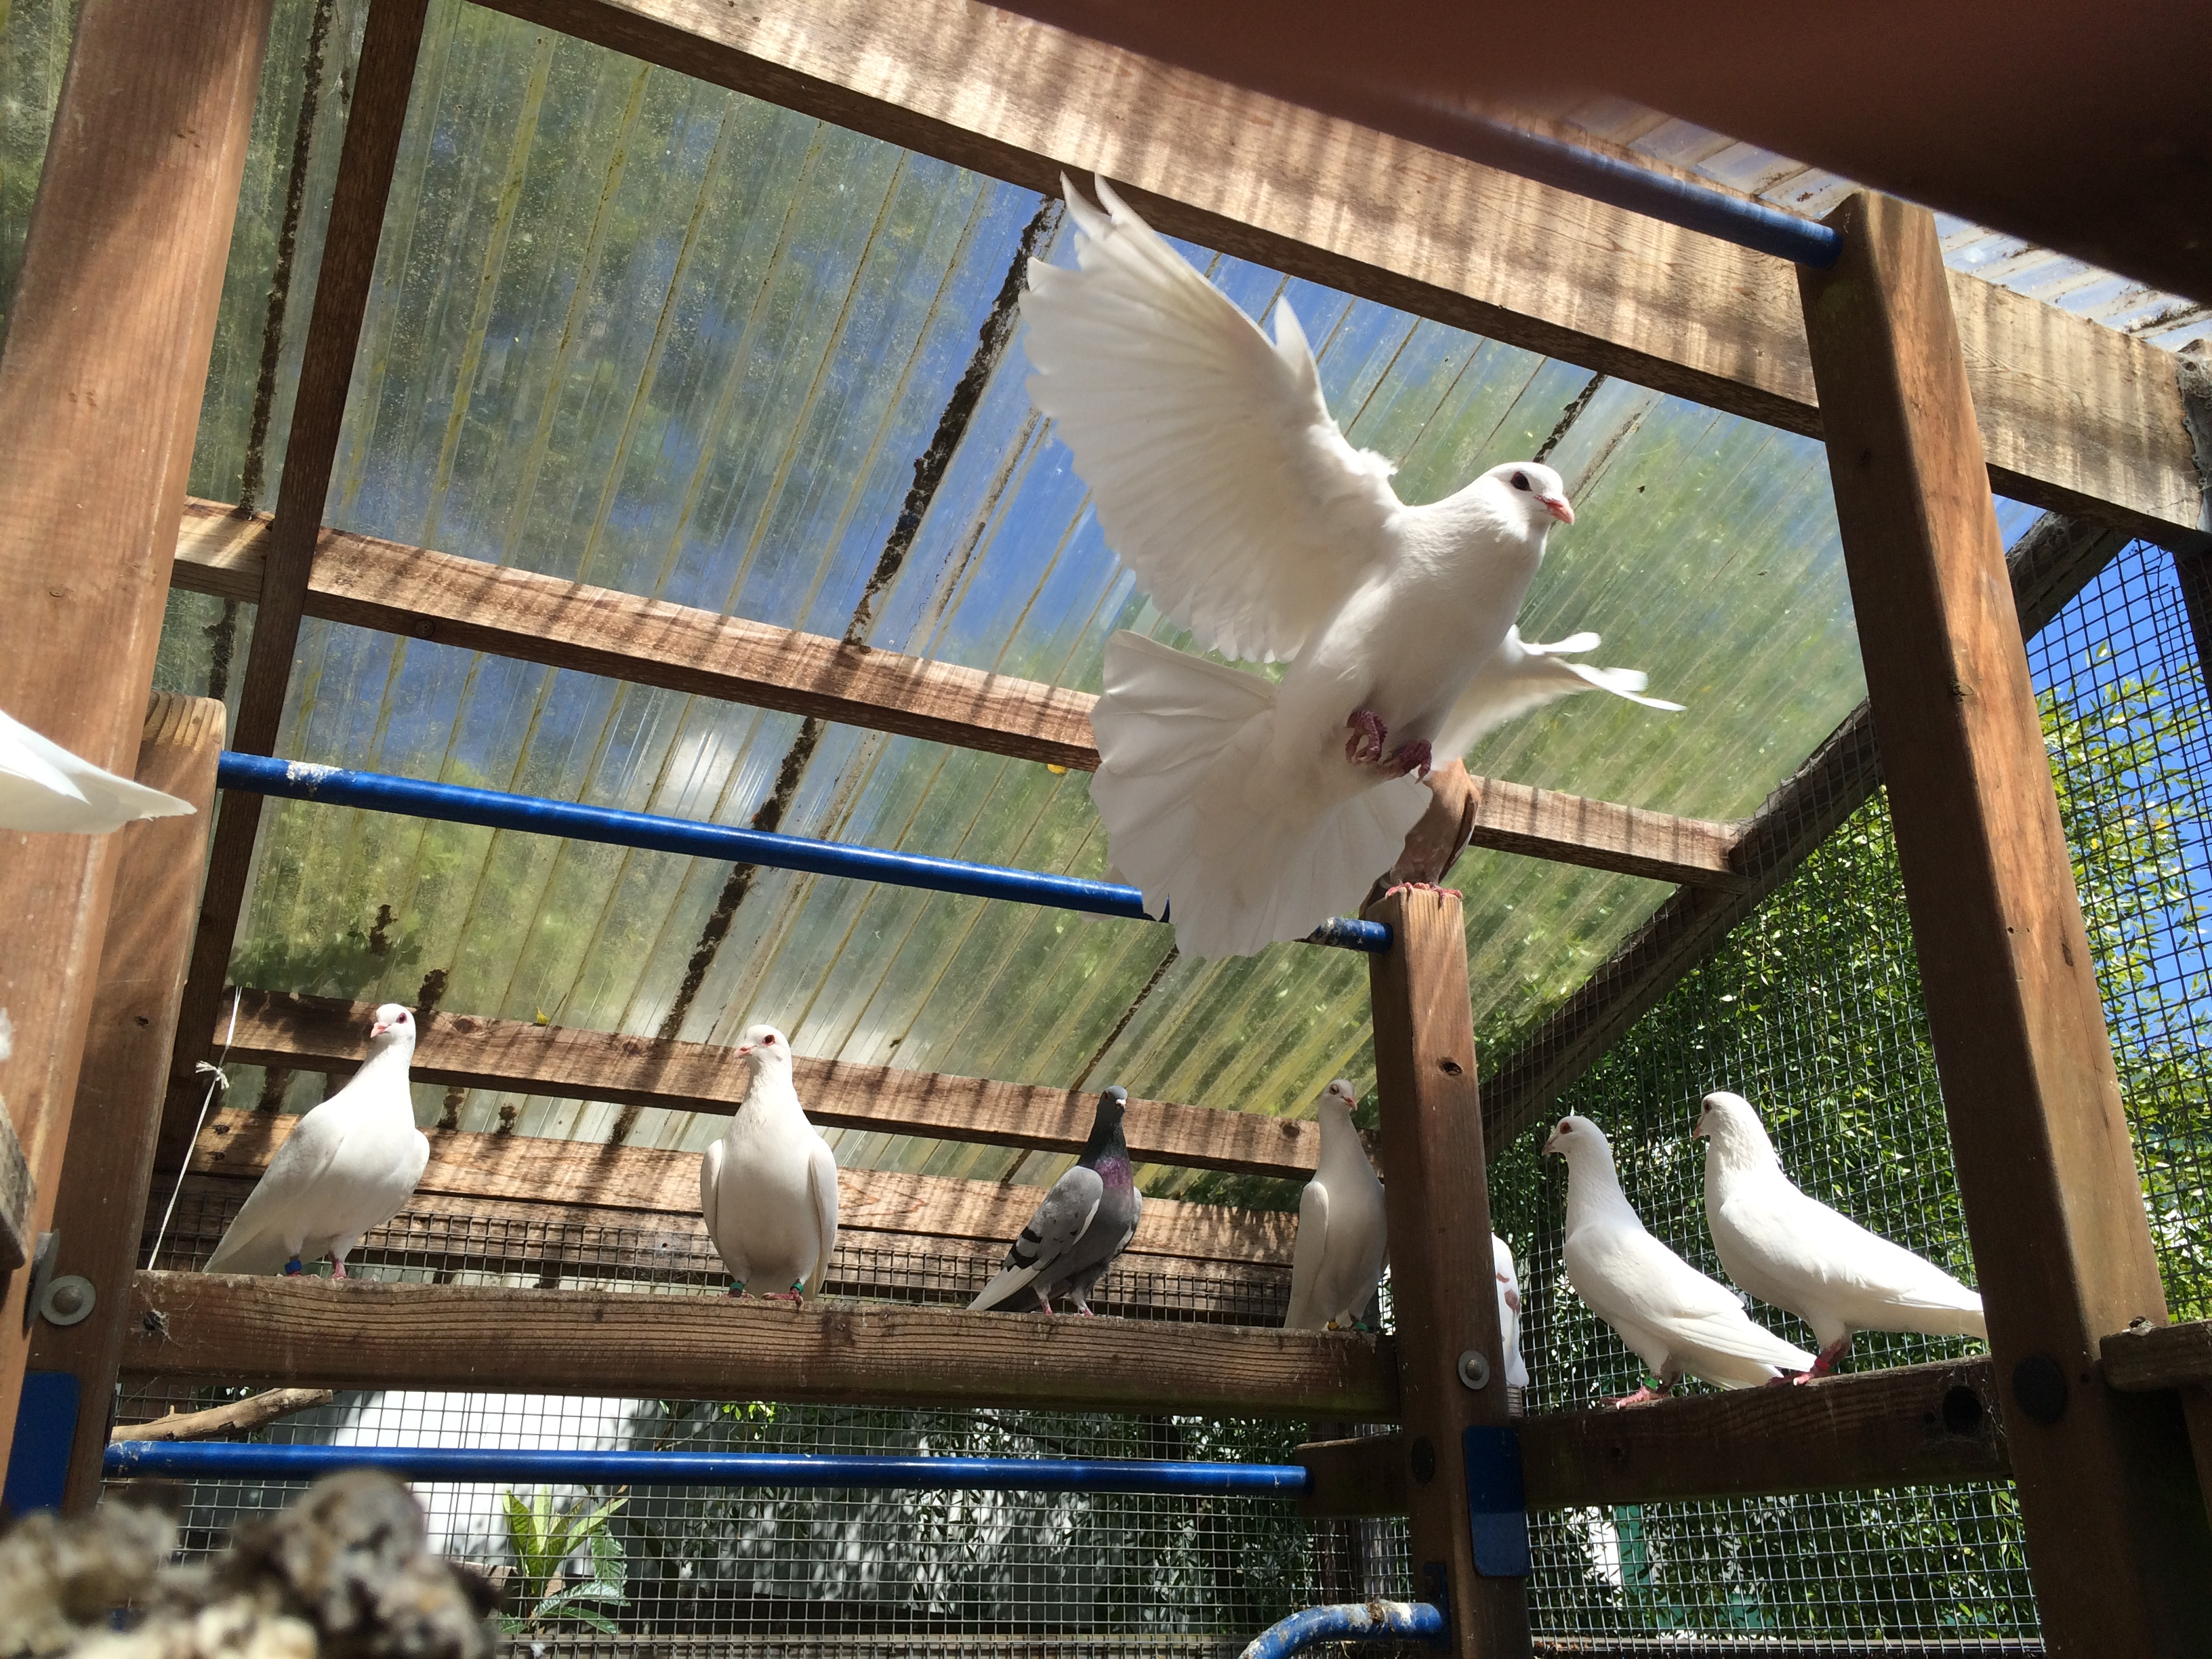 Domestic pigeons in an aviary